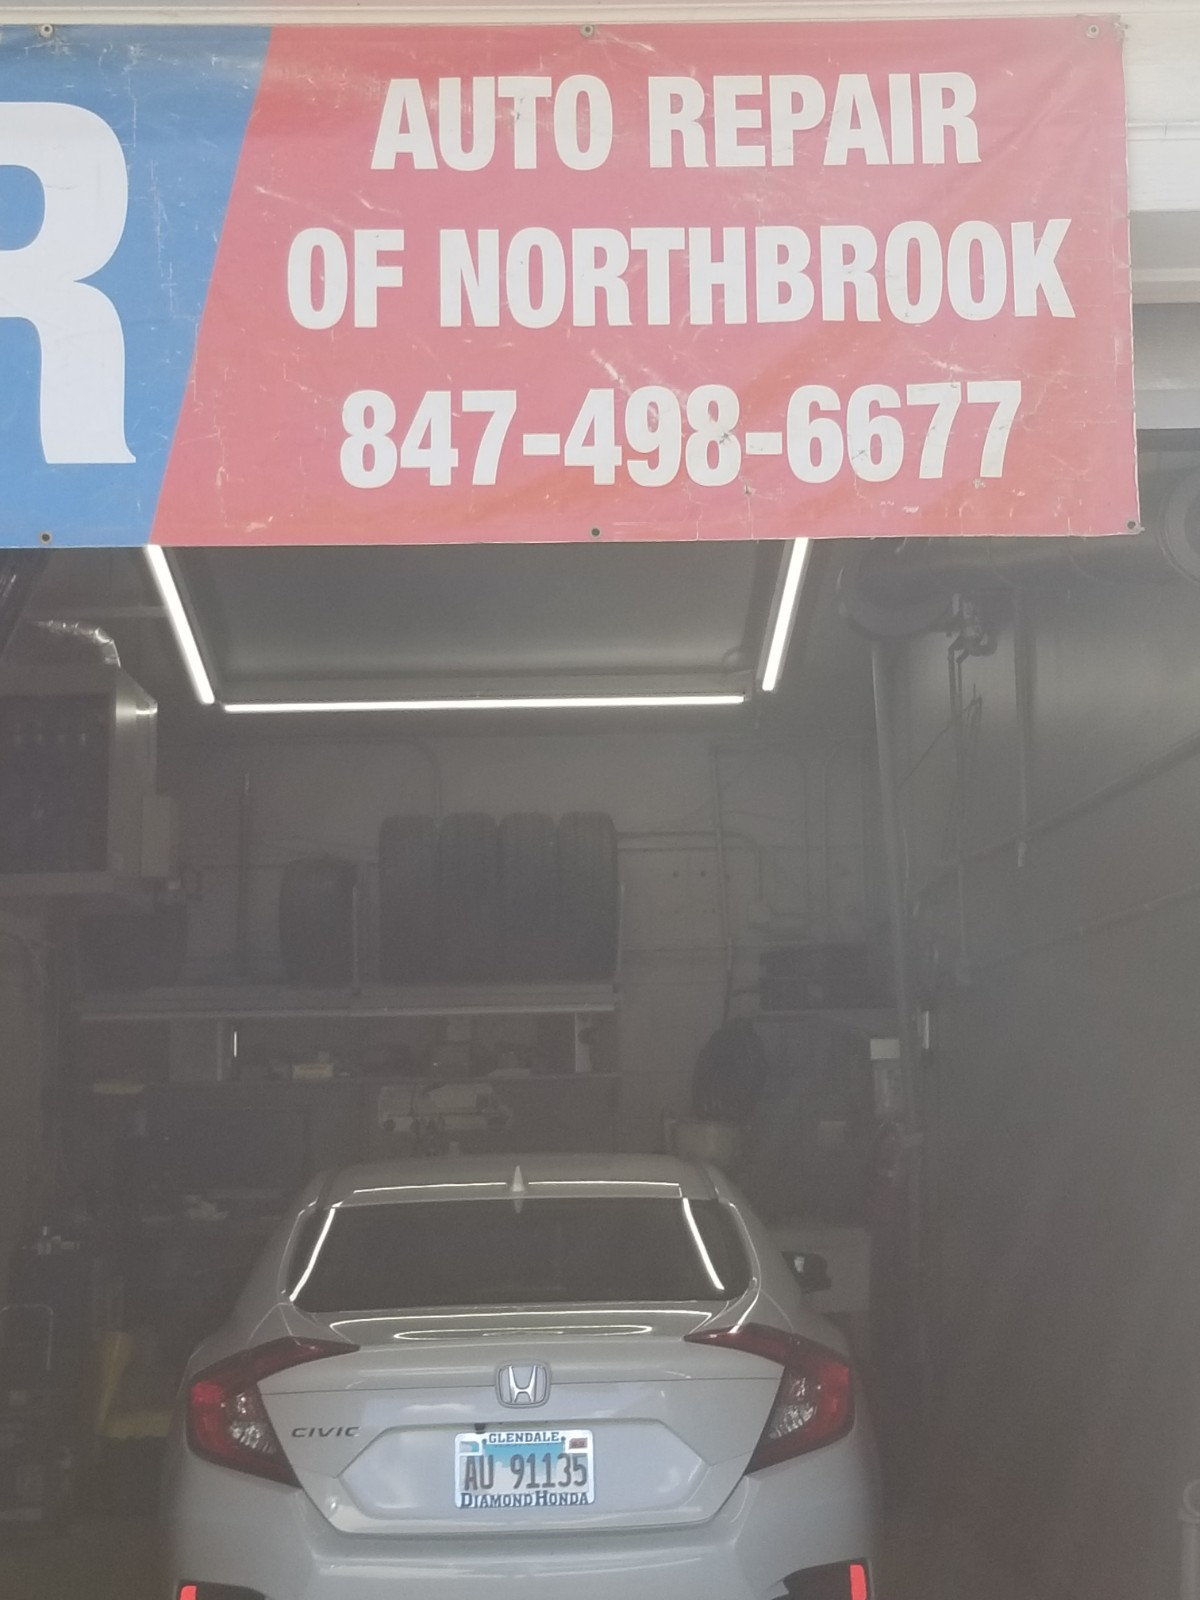 Auto Repair of Northbrook image 2